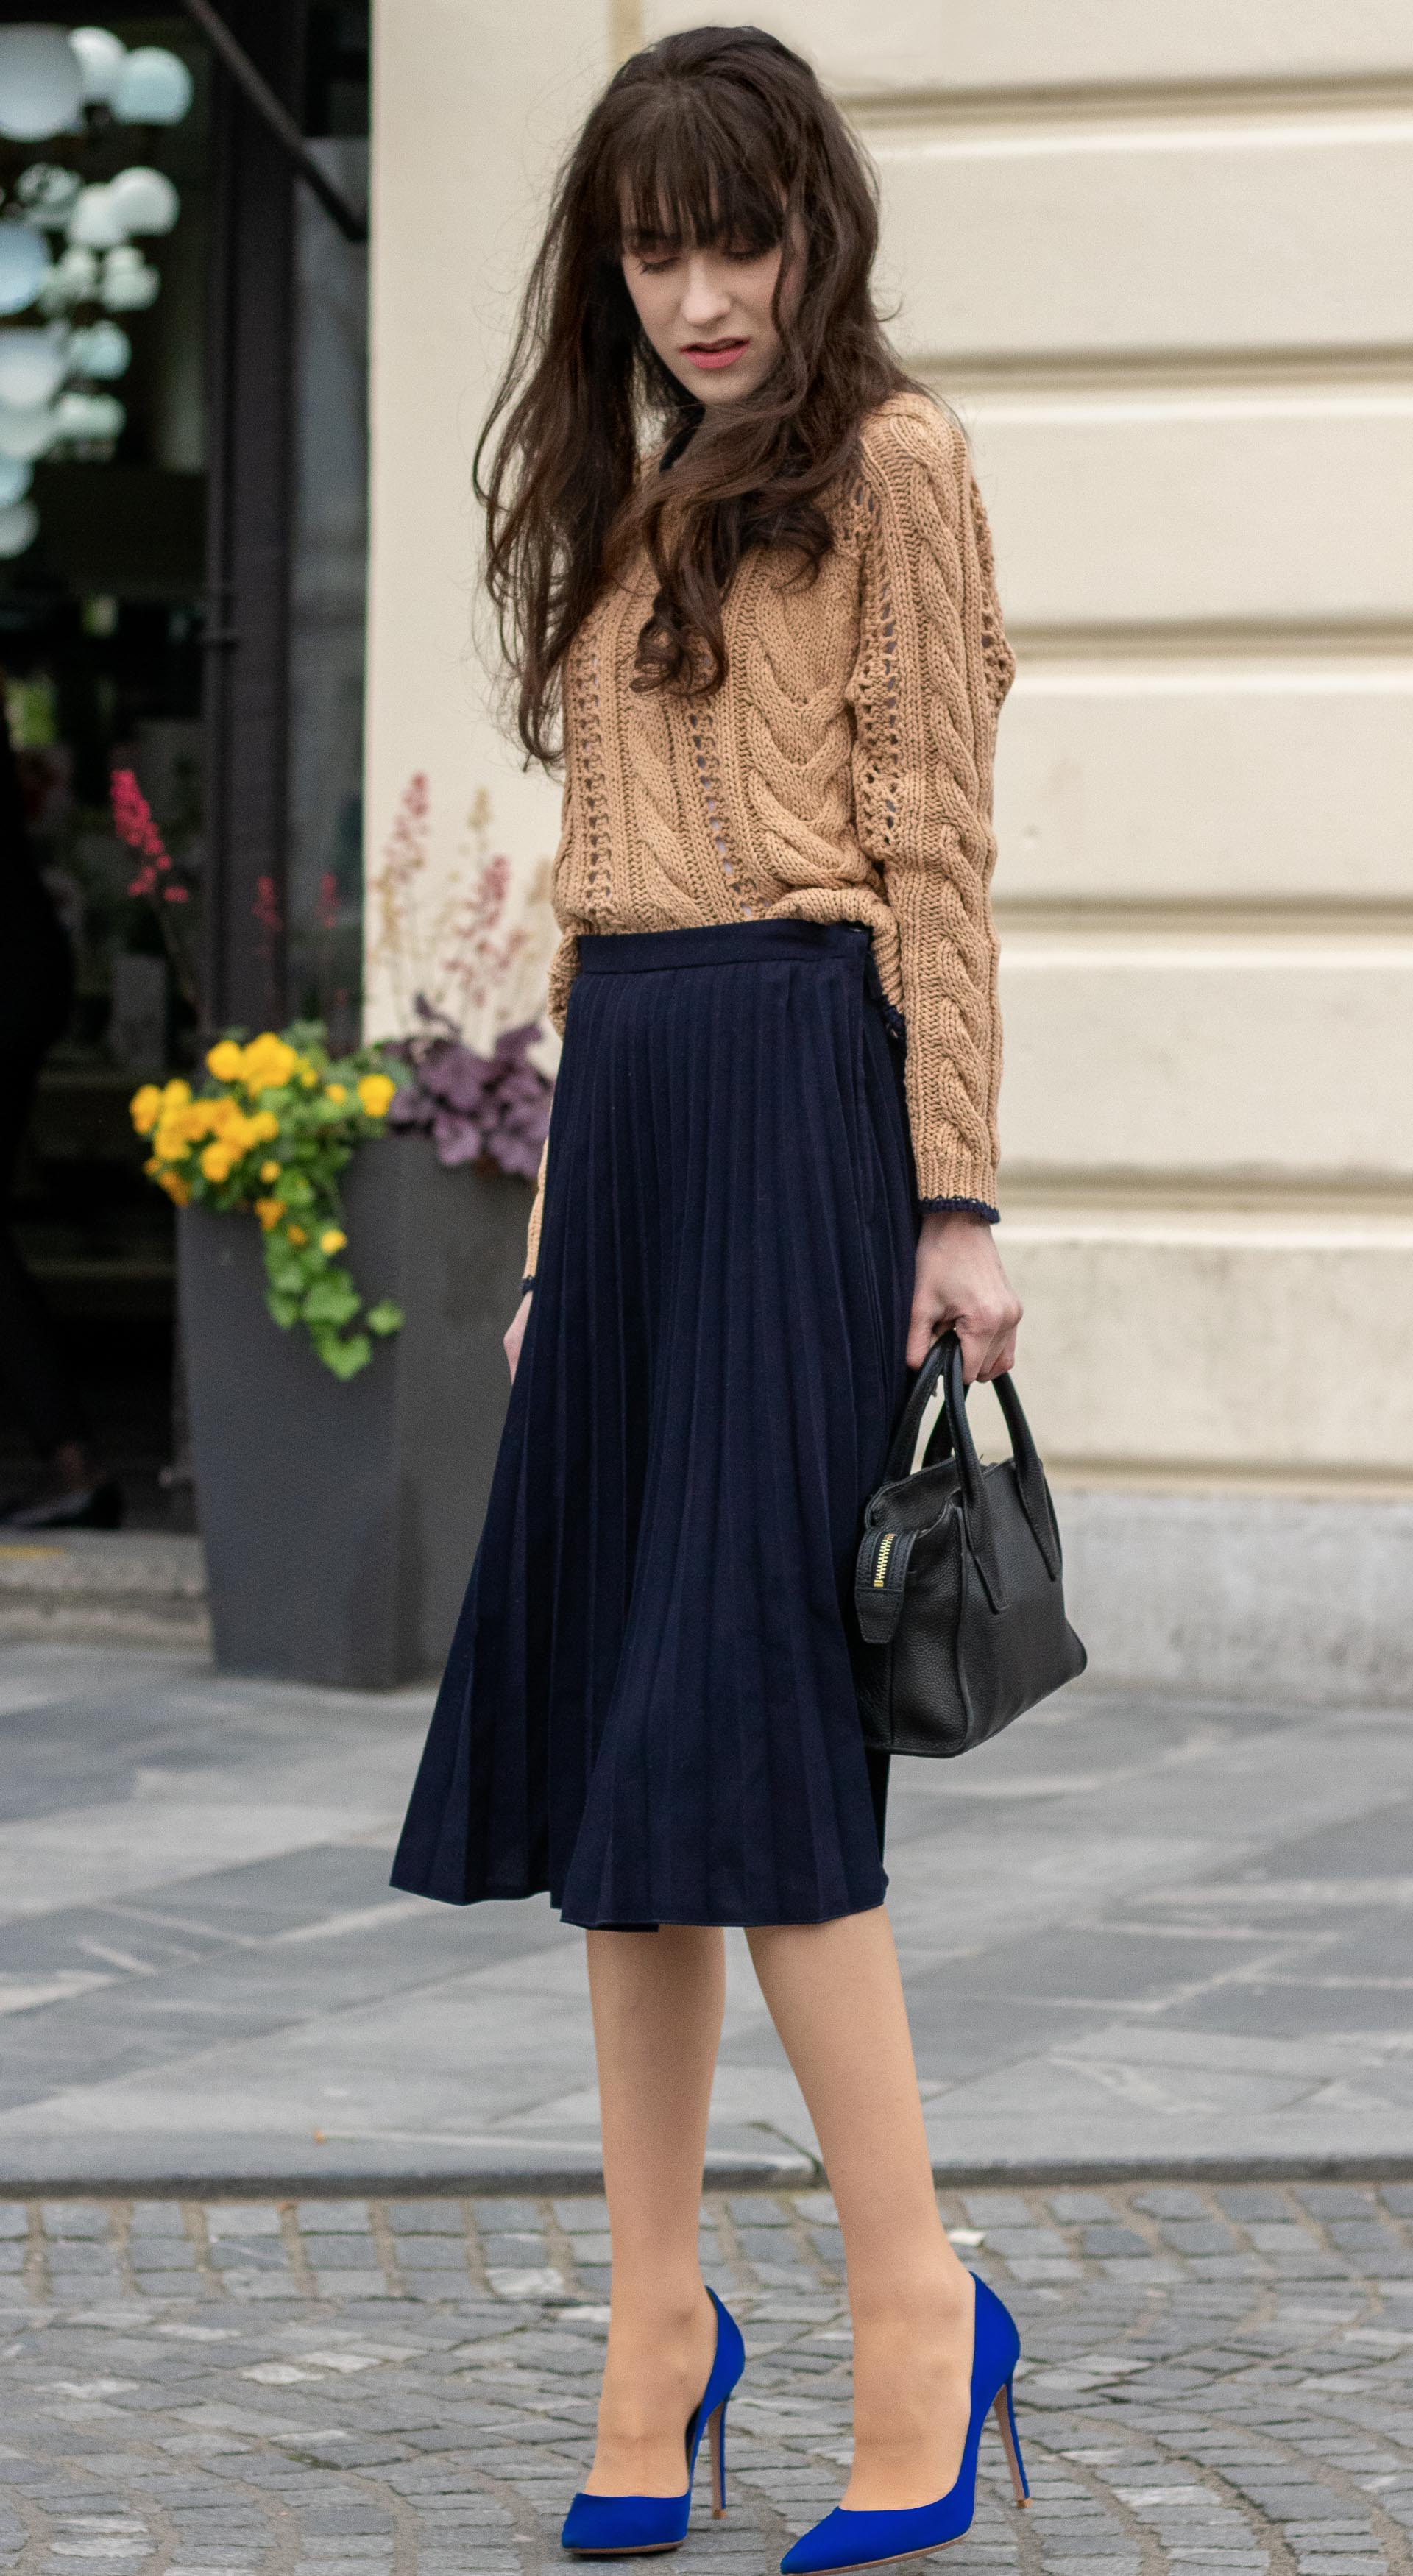 Must follow fashion blogger Veronika Lipar of Brunette from Wall Street dressed in camel beige Mango cable knit camel sweater blue pleated midi skirt blue Gianvito Rossi pumps black top handle bag bangs on long hair standing on the street